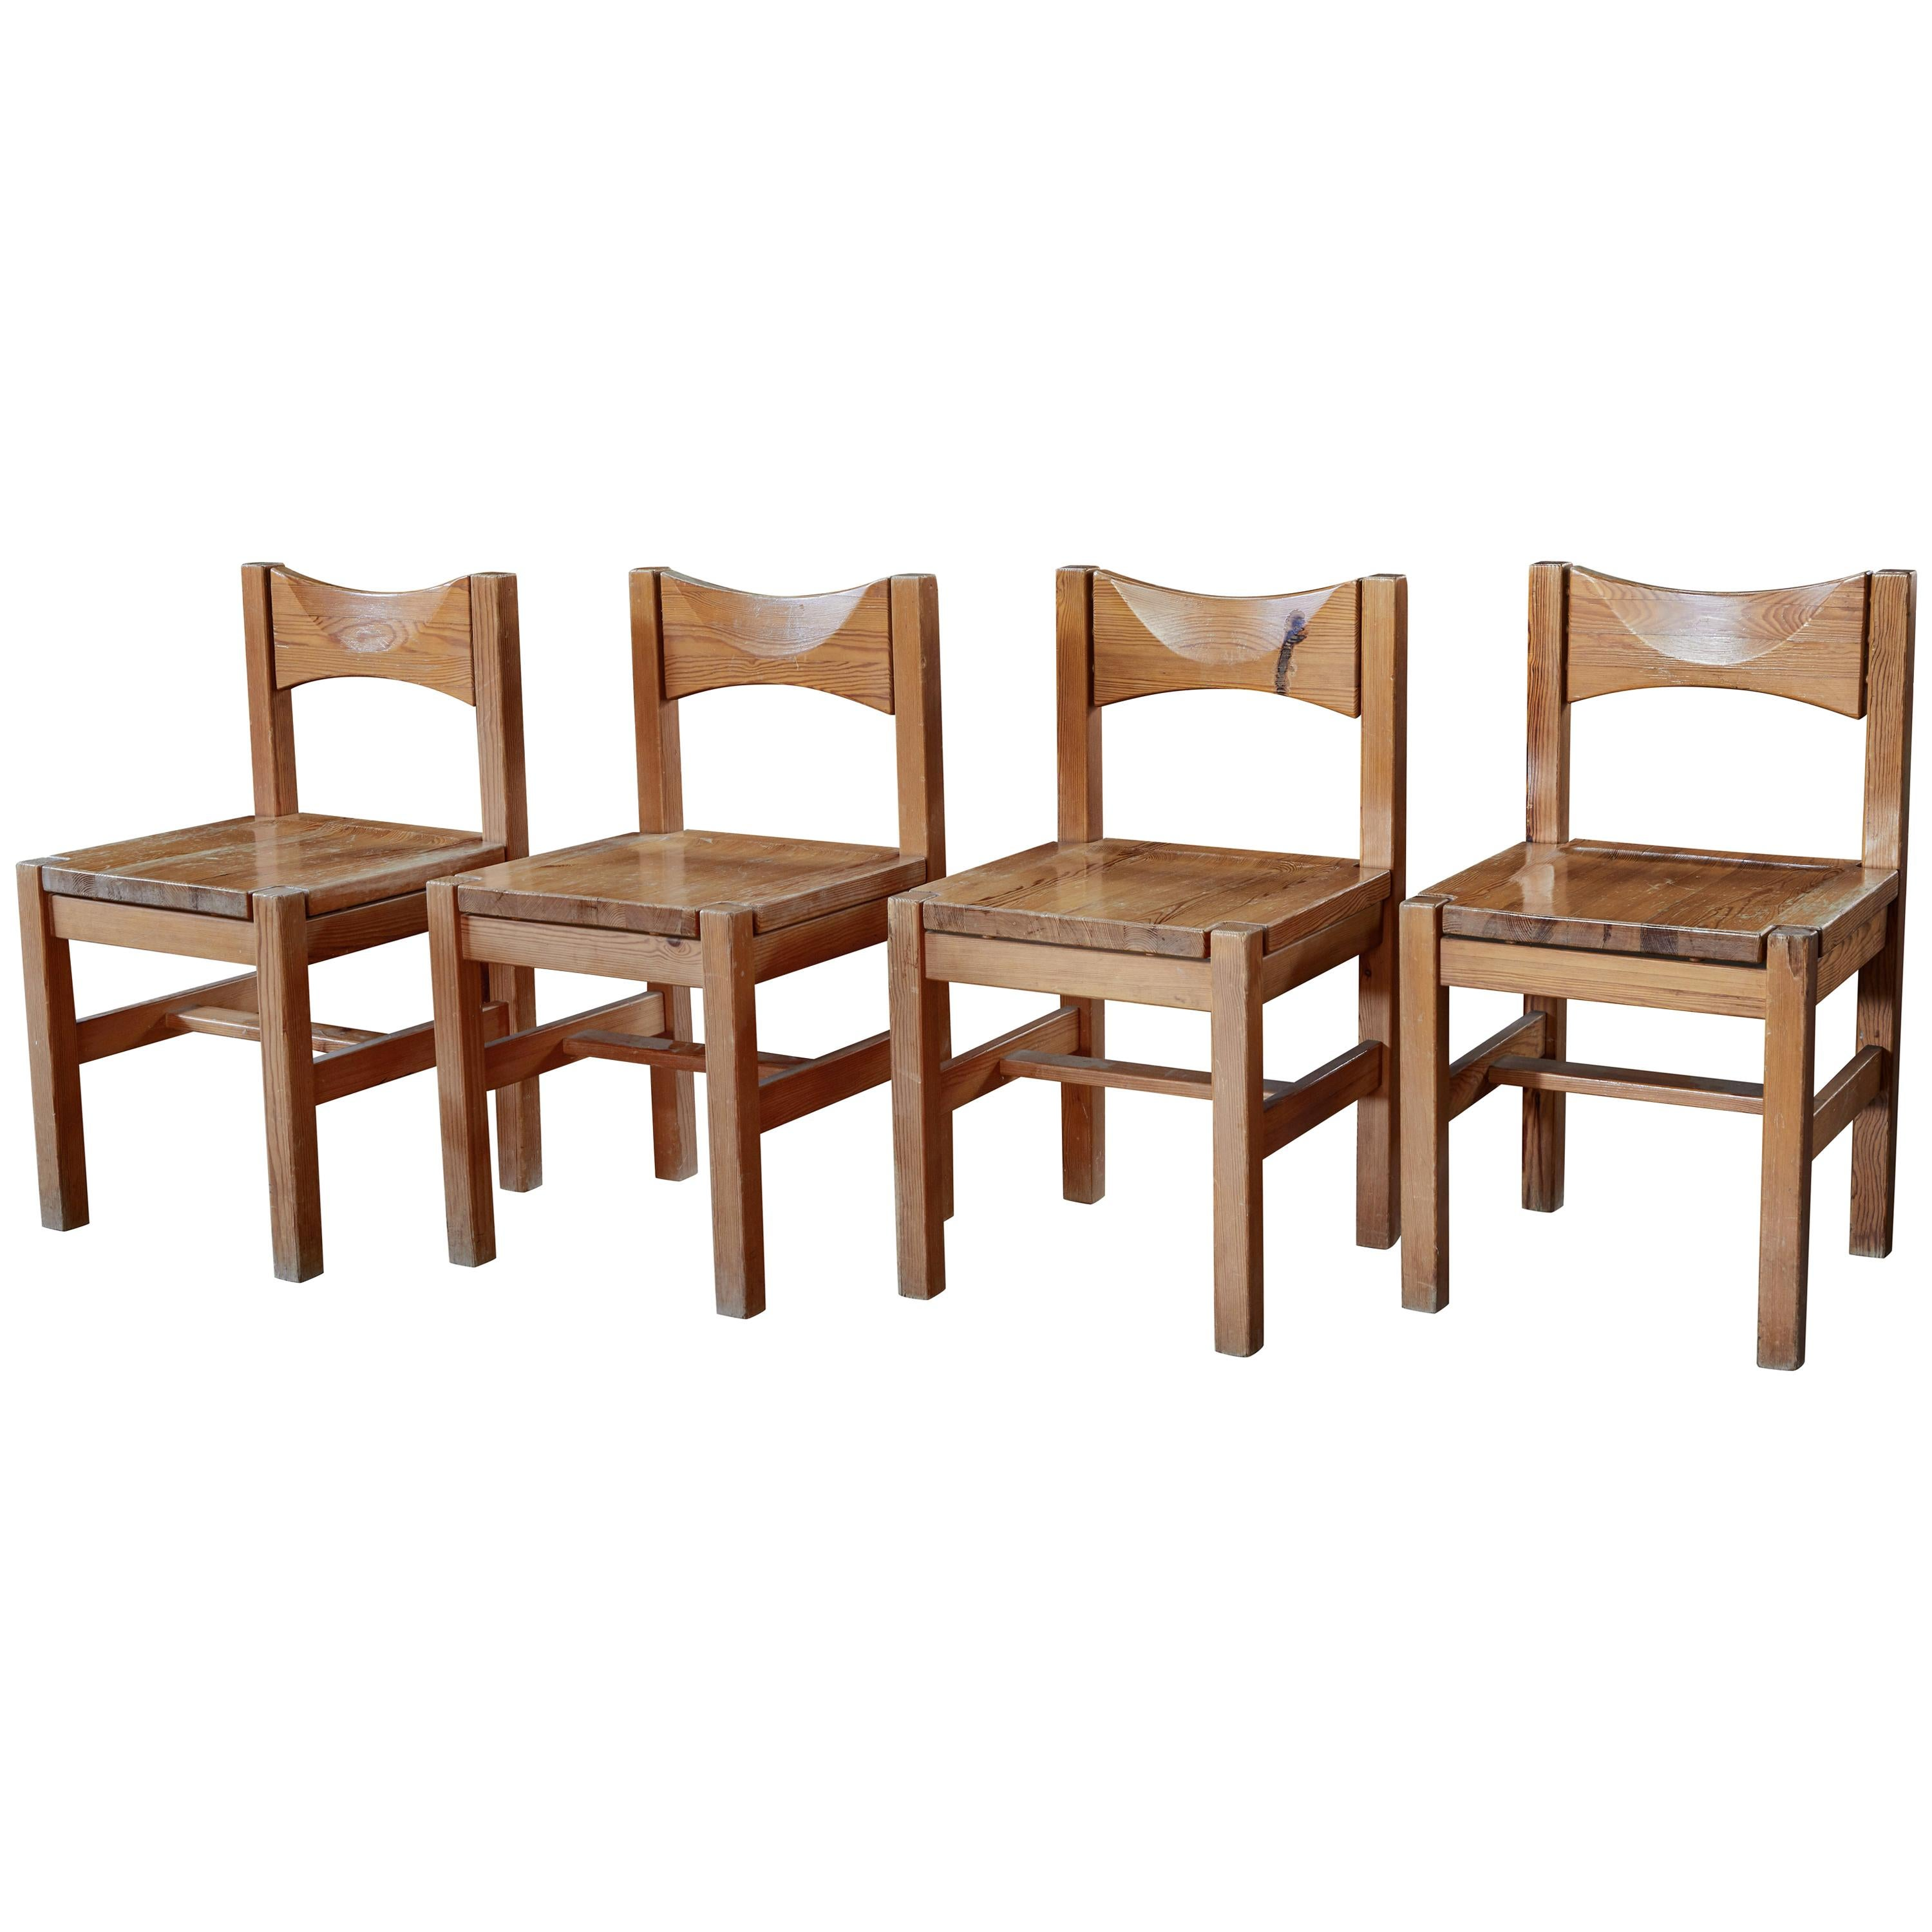 Set of Four 1960s Ilmari Tapiovaara Dining Chairs for Laukaan Puu Oy, Finland